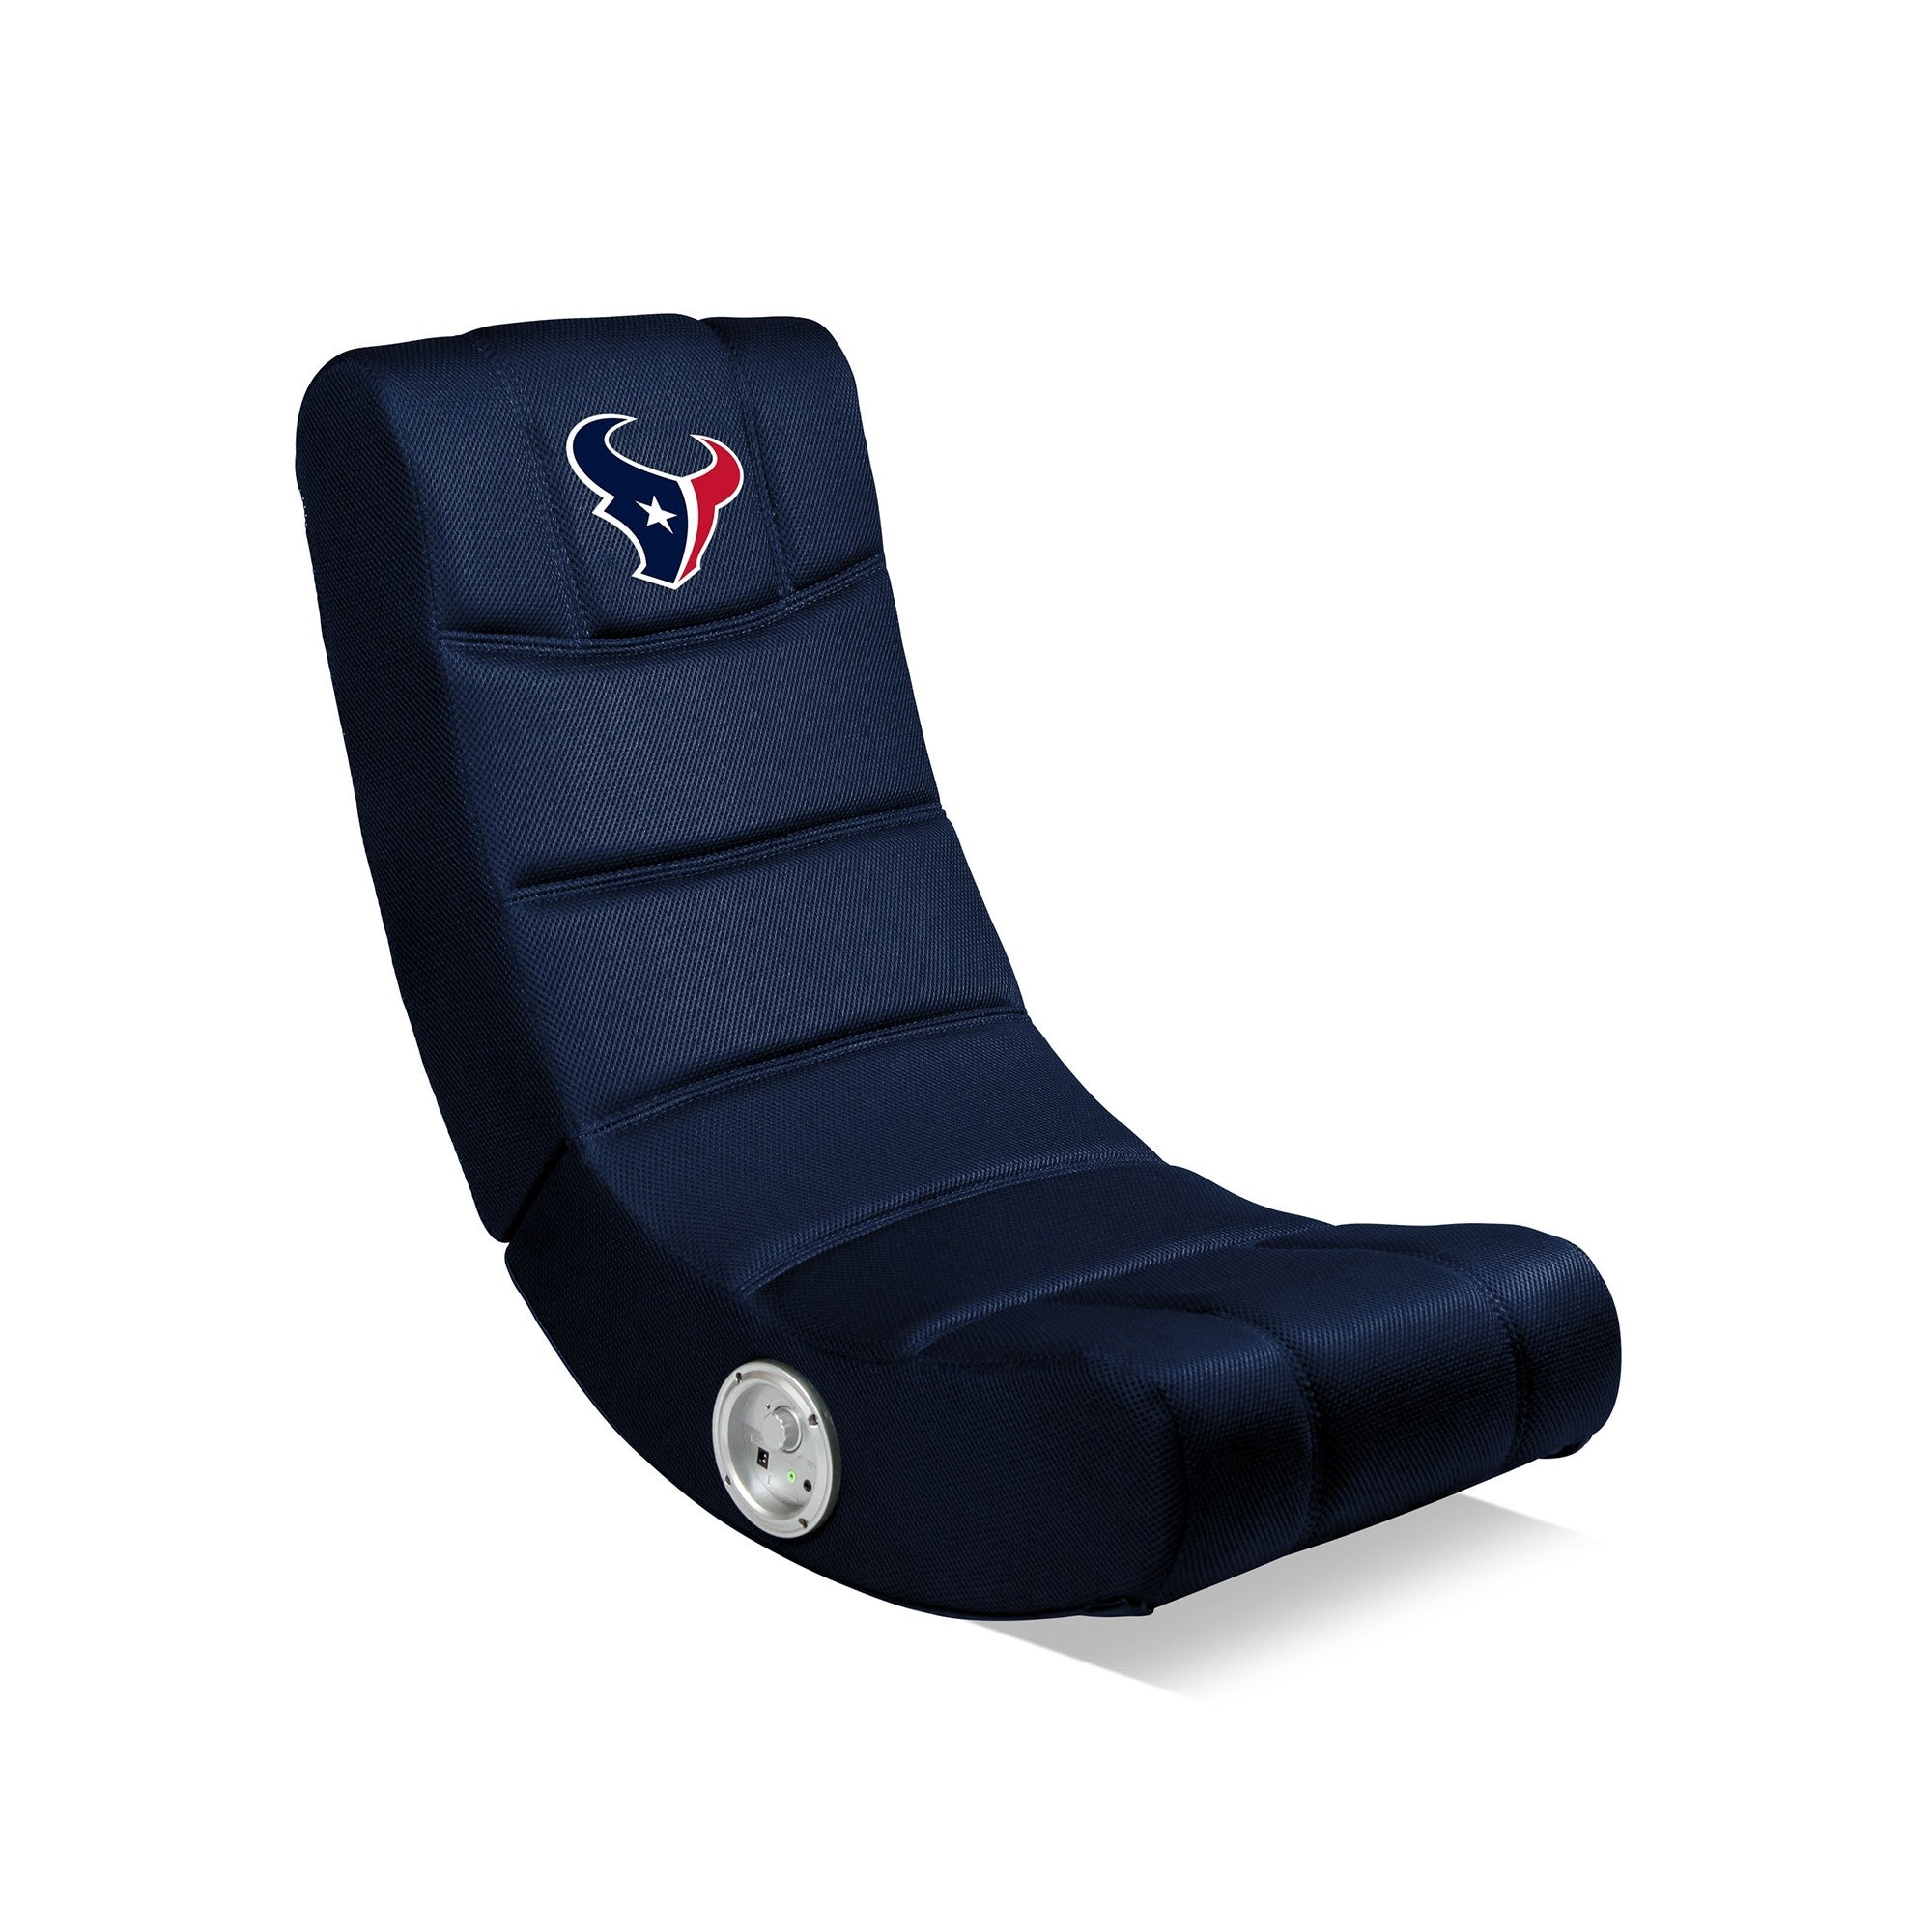 sc 1 st  Racer Gaming Chairs & Houston Texans Bluetooth Rocker Gaming Chair - Racer Gaming Chairs